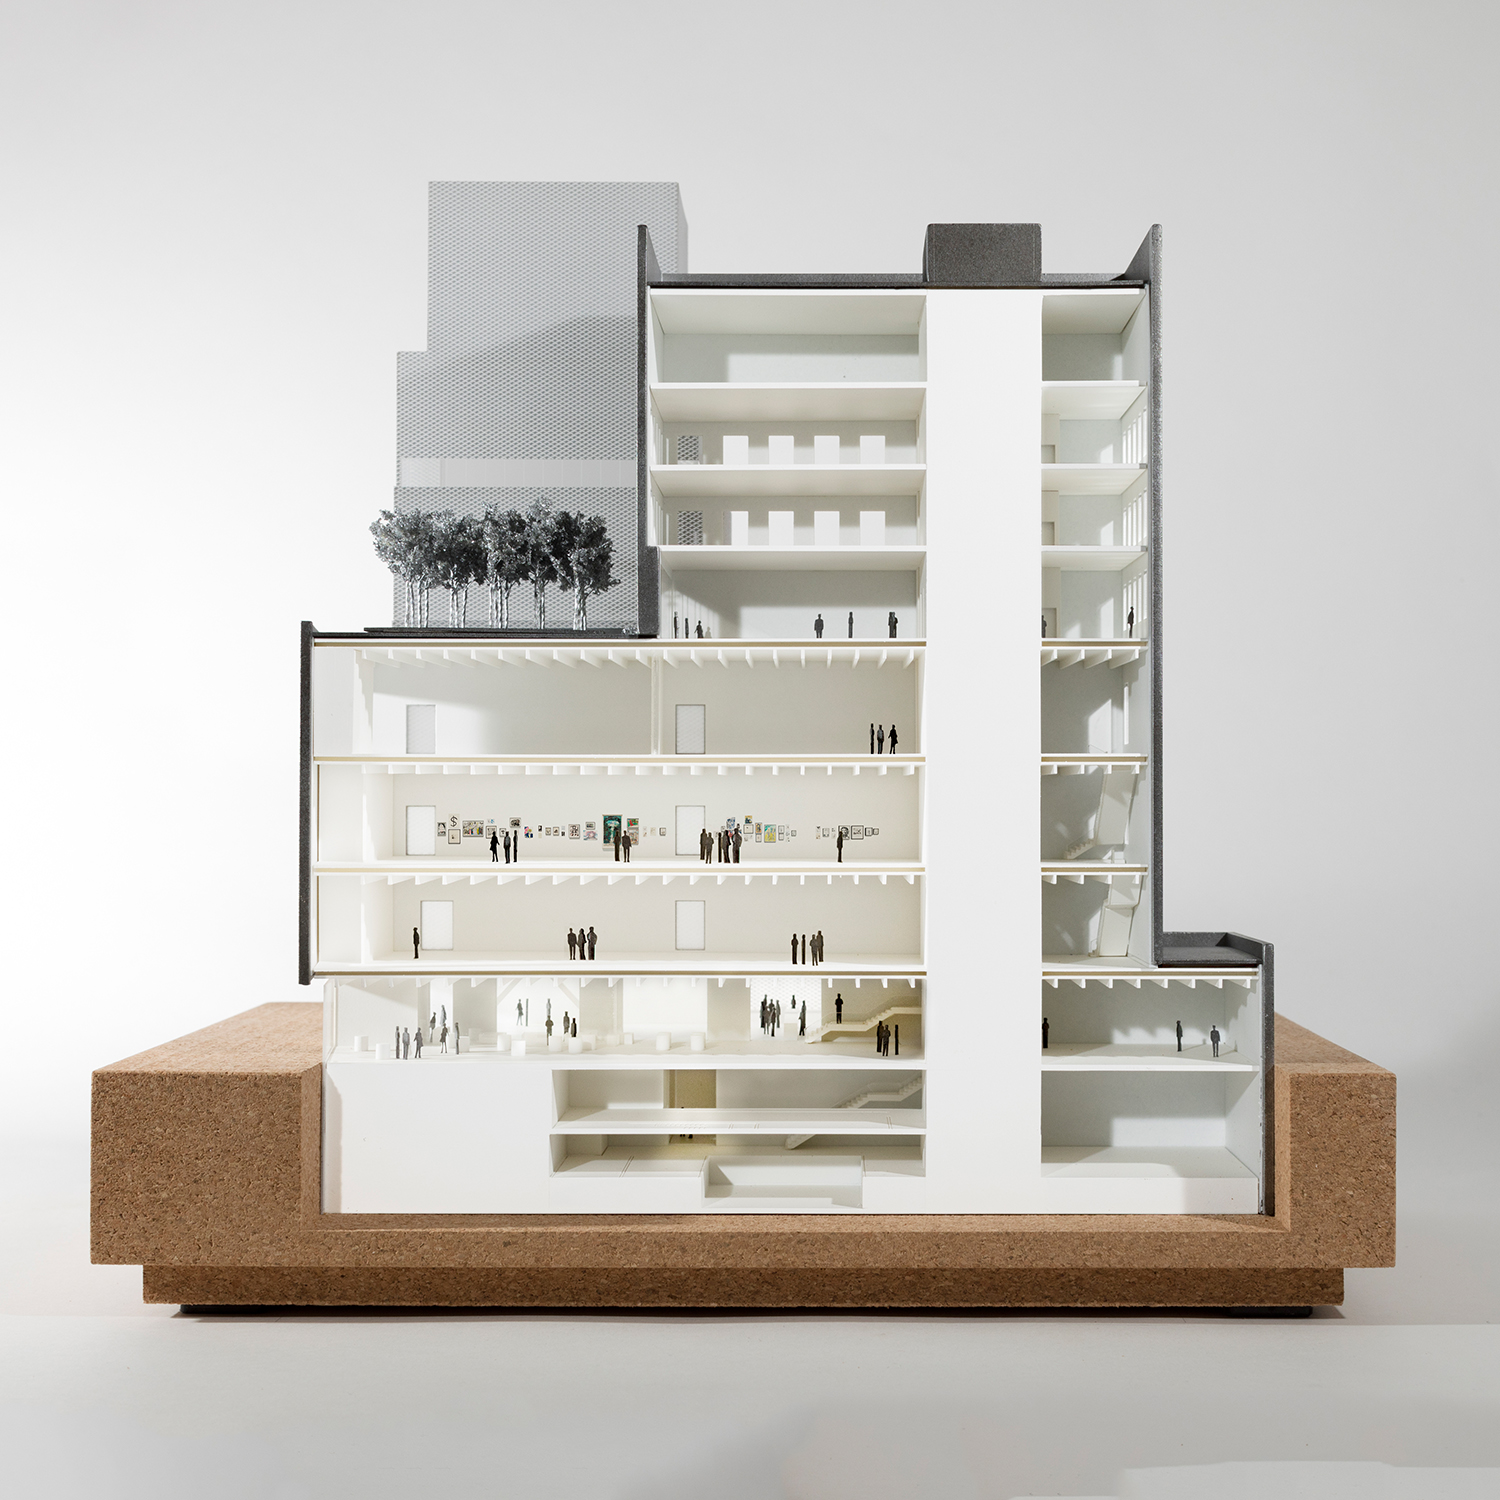 Selldorf Architects  New Museum (Competition)